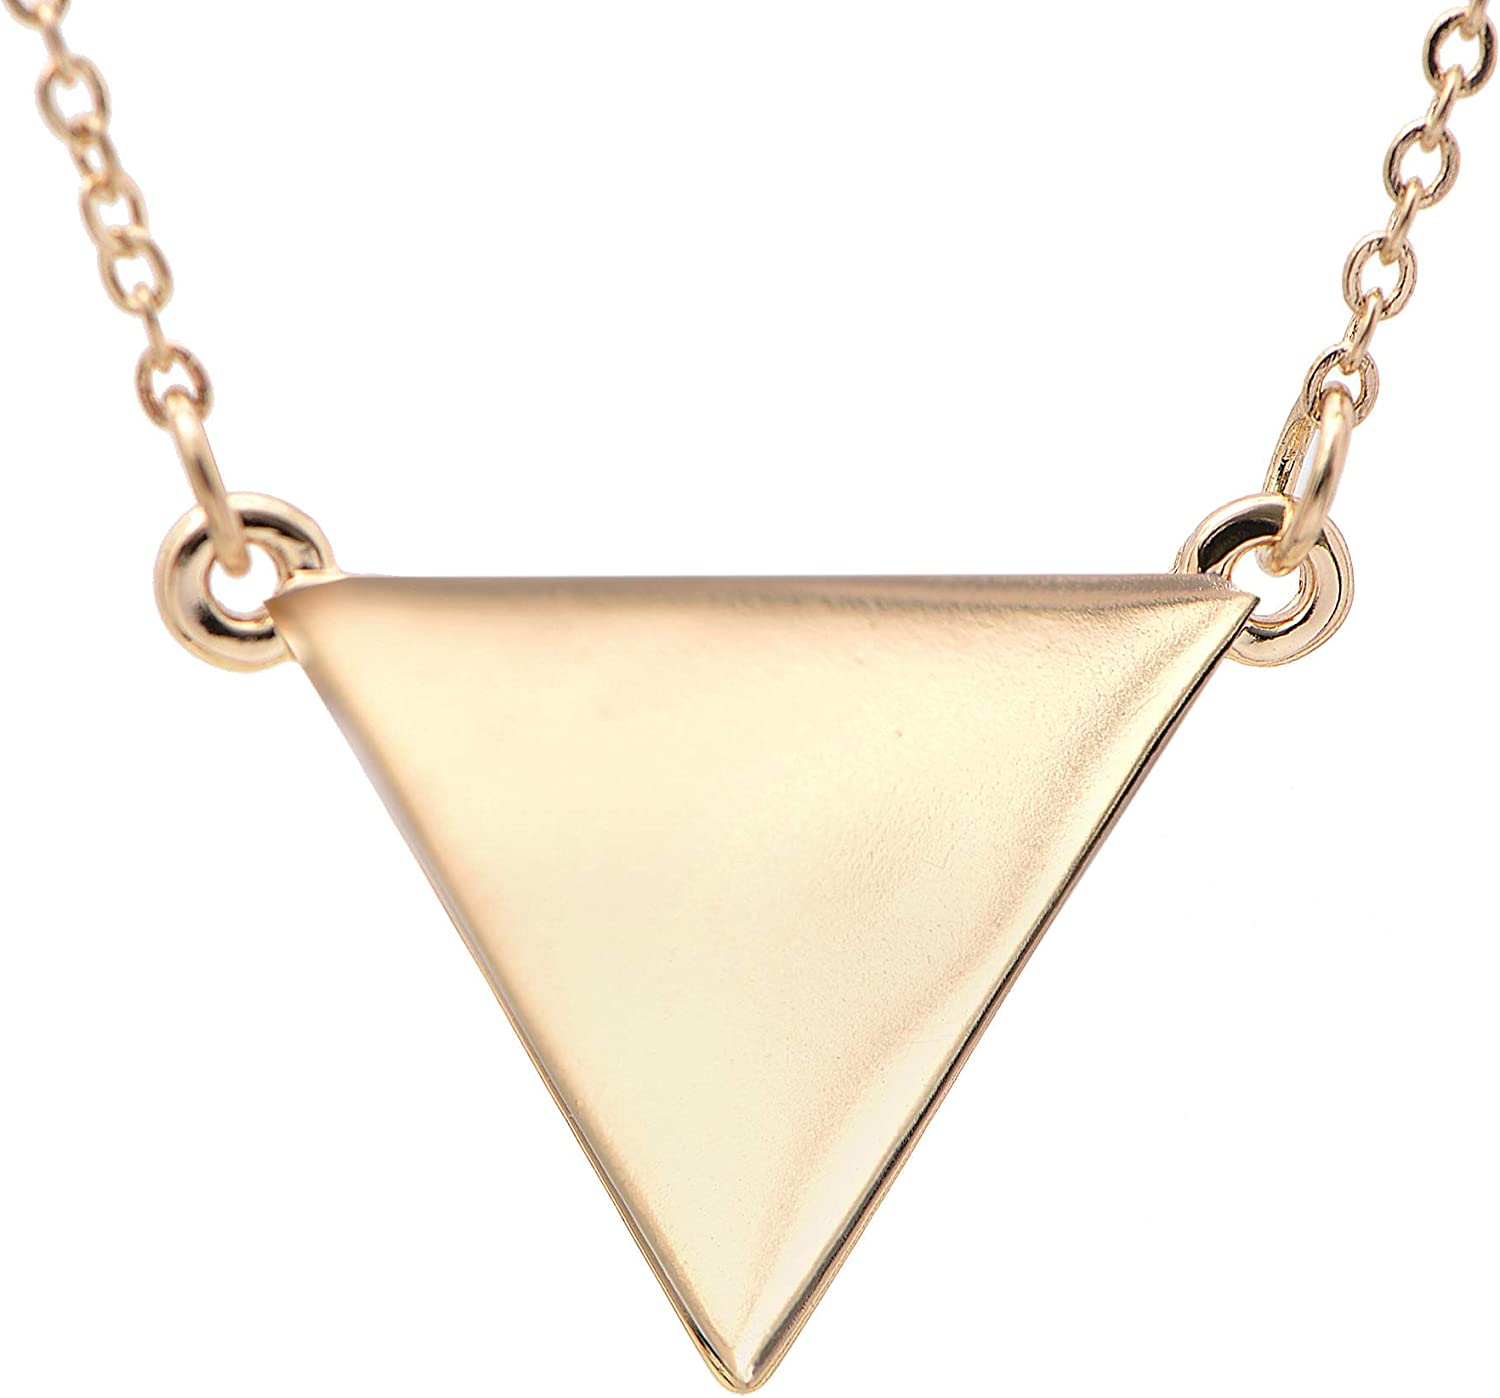 Dainty Little Gold Triangle Minimalist Necklace Gold Triangle Necklace Everyday Sister Necklace Gift for women Silver Geometric Necklace